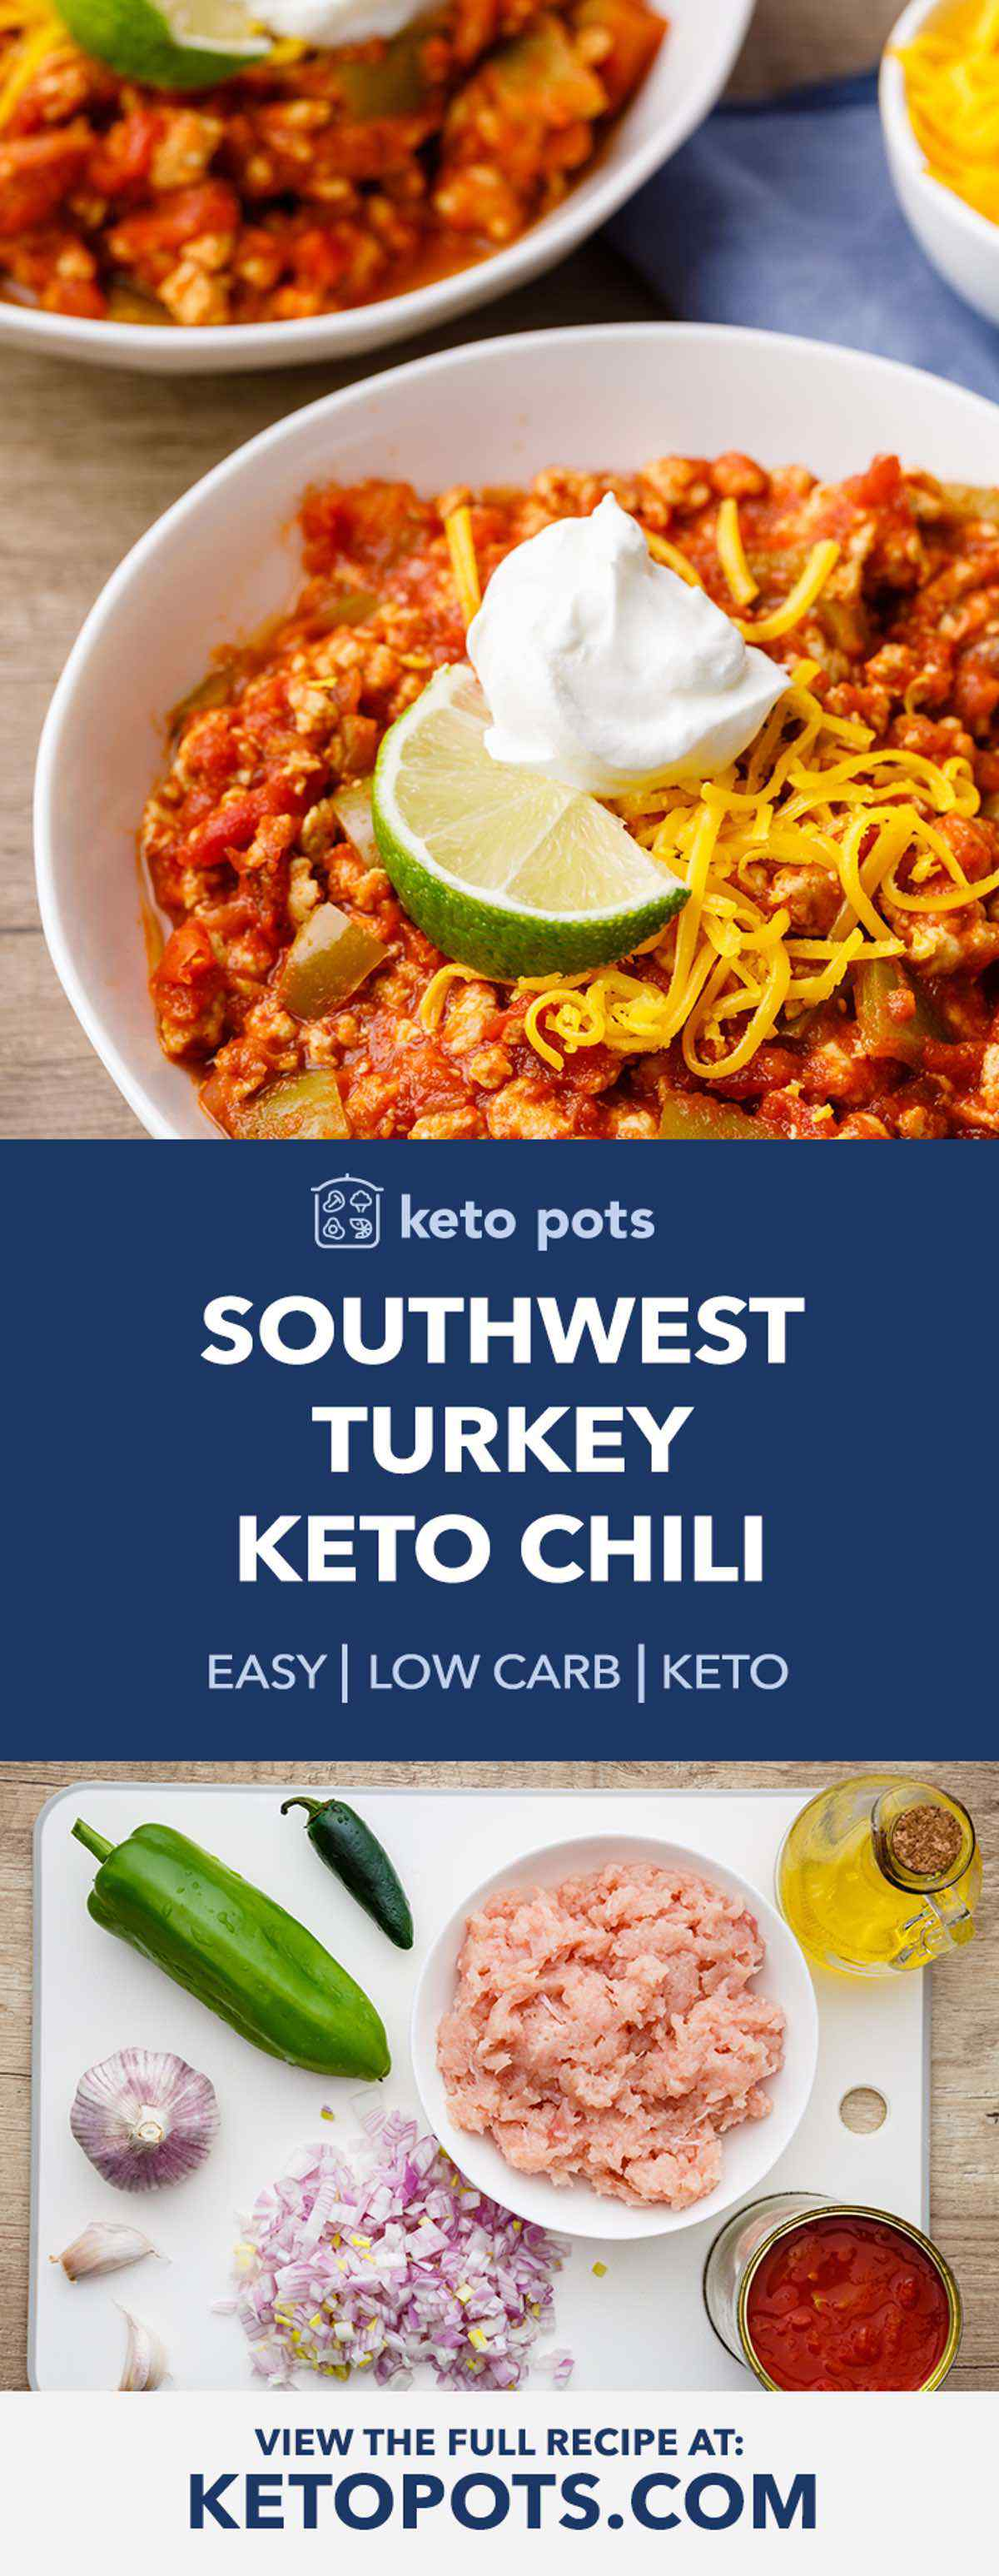 Keto Turkey Chili